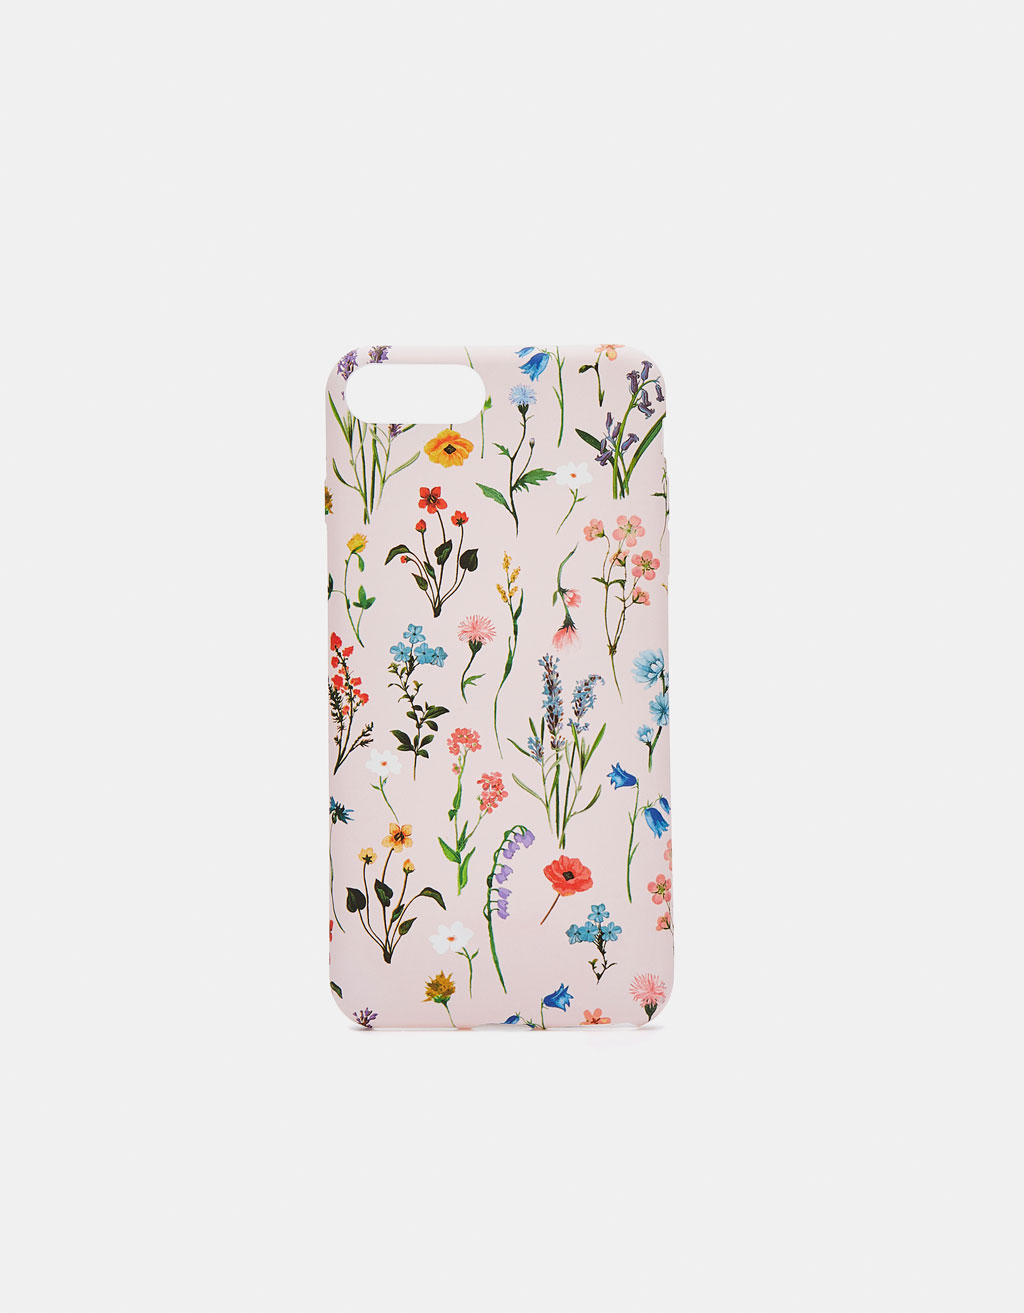 Capa com estampado floral iPhone 6plus/7plus/8plus